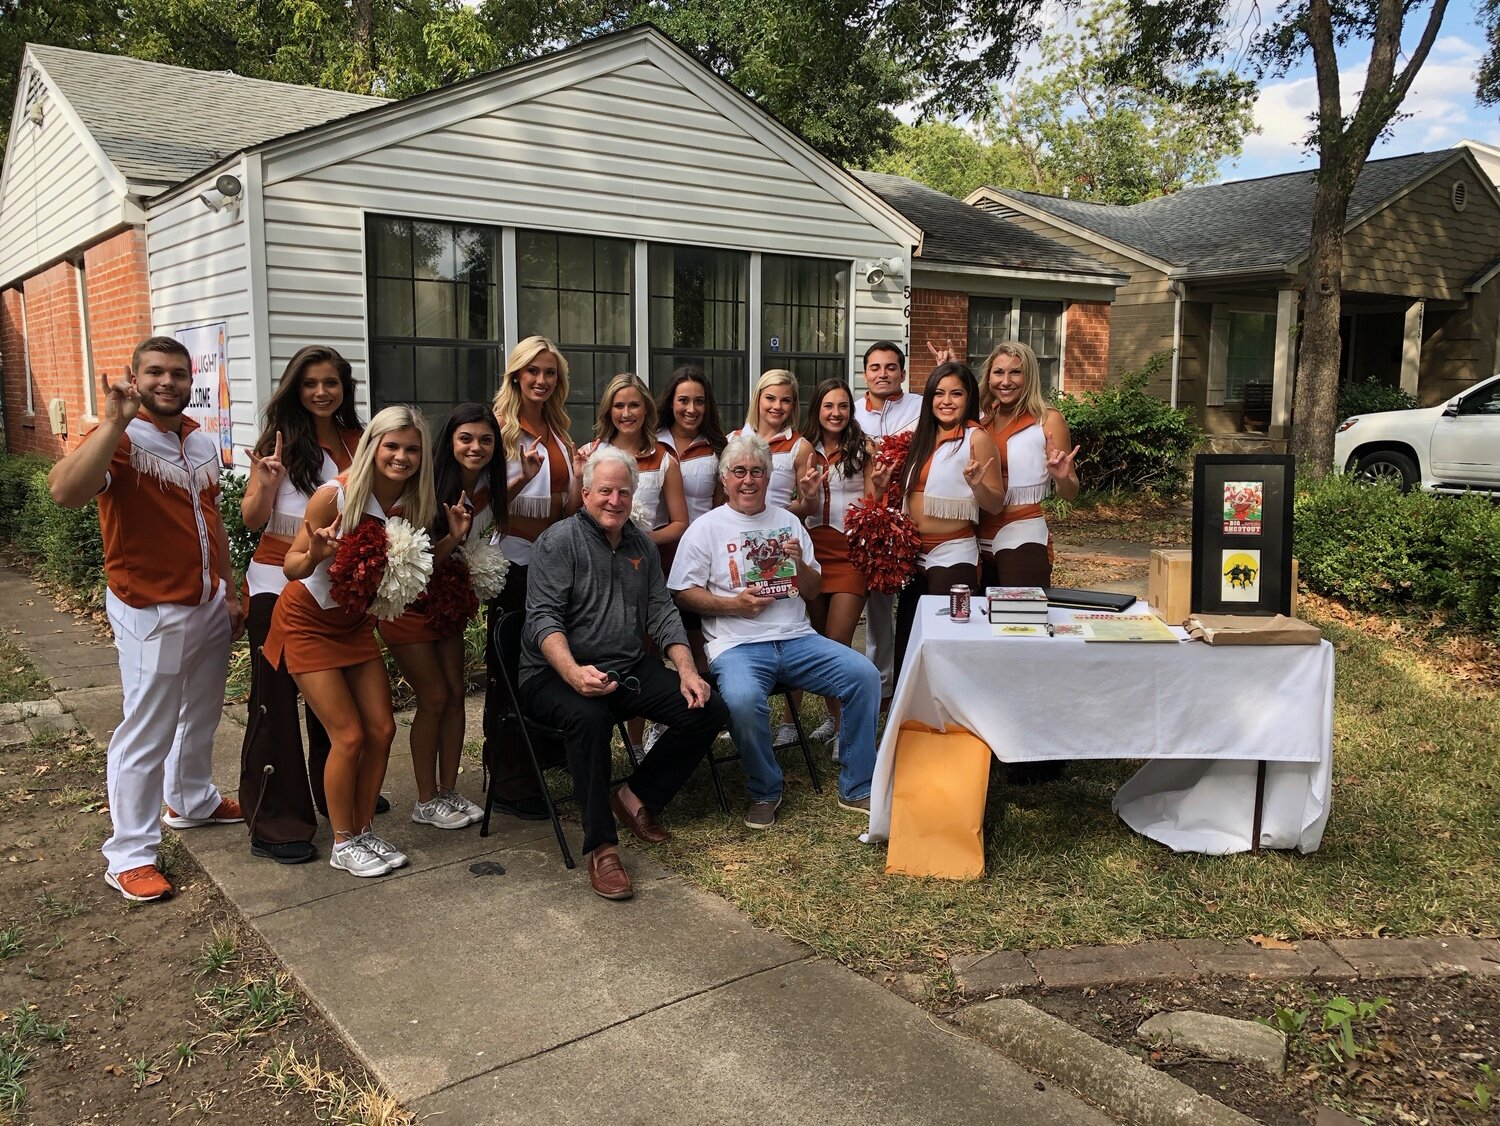 Texas Cheerleaders join author Mike Looney in promoting his new boo k The Big Shootout